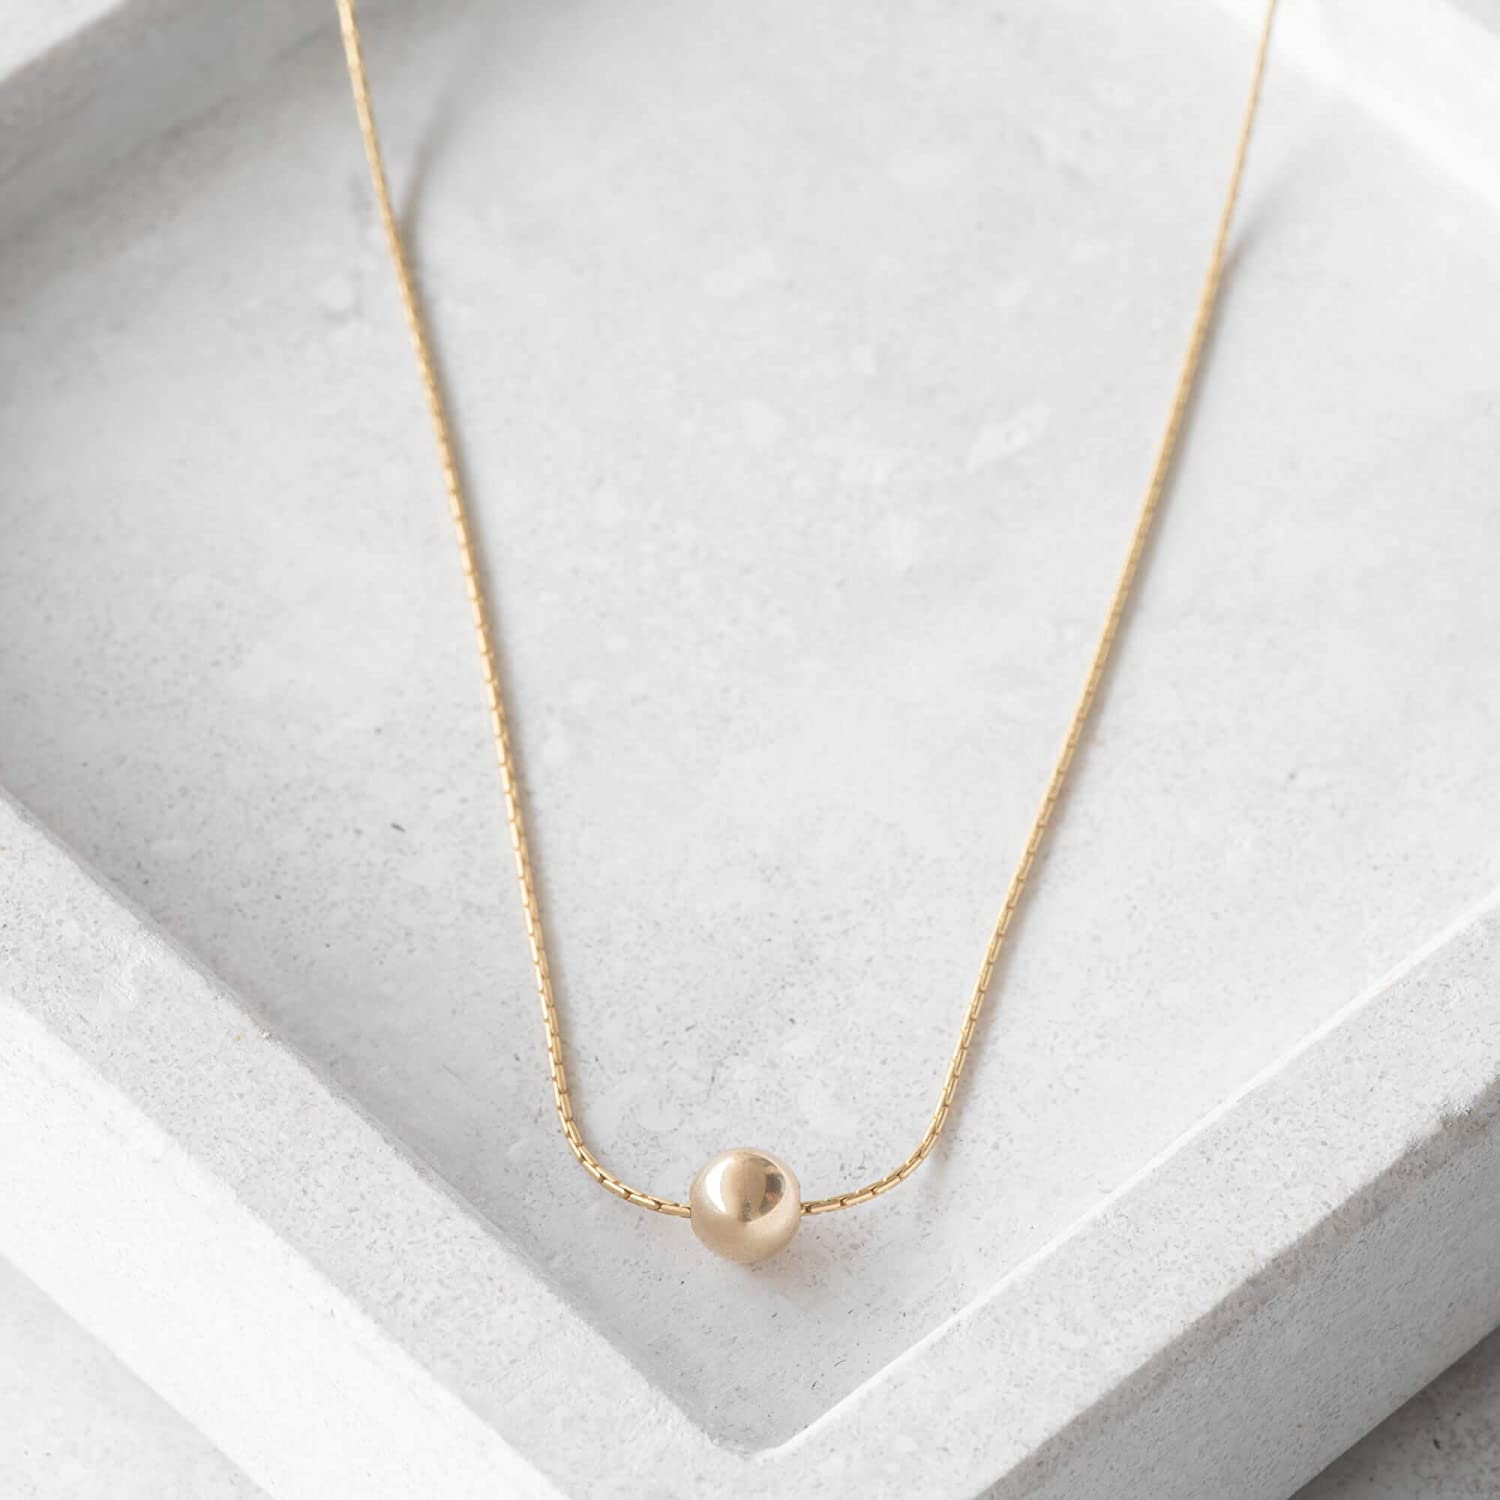 Galis Sterling Silver Ball Chain Necklace The Perfect Minimalism Jewelry for Her